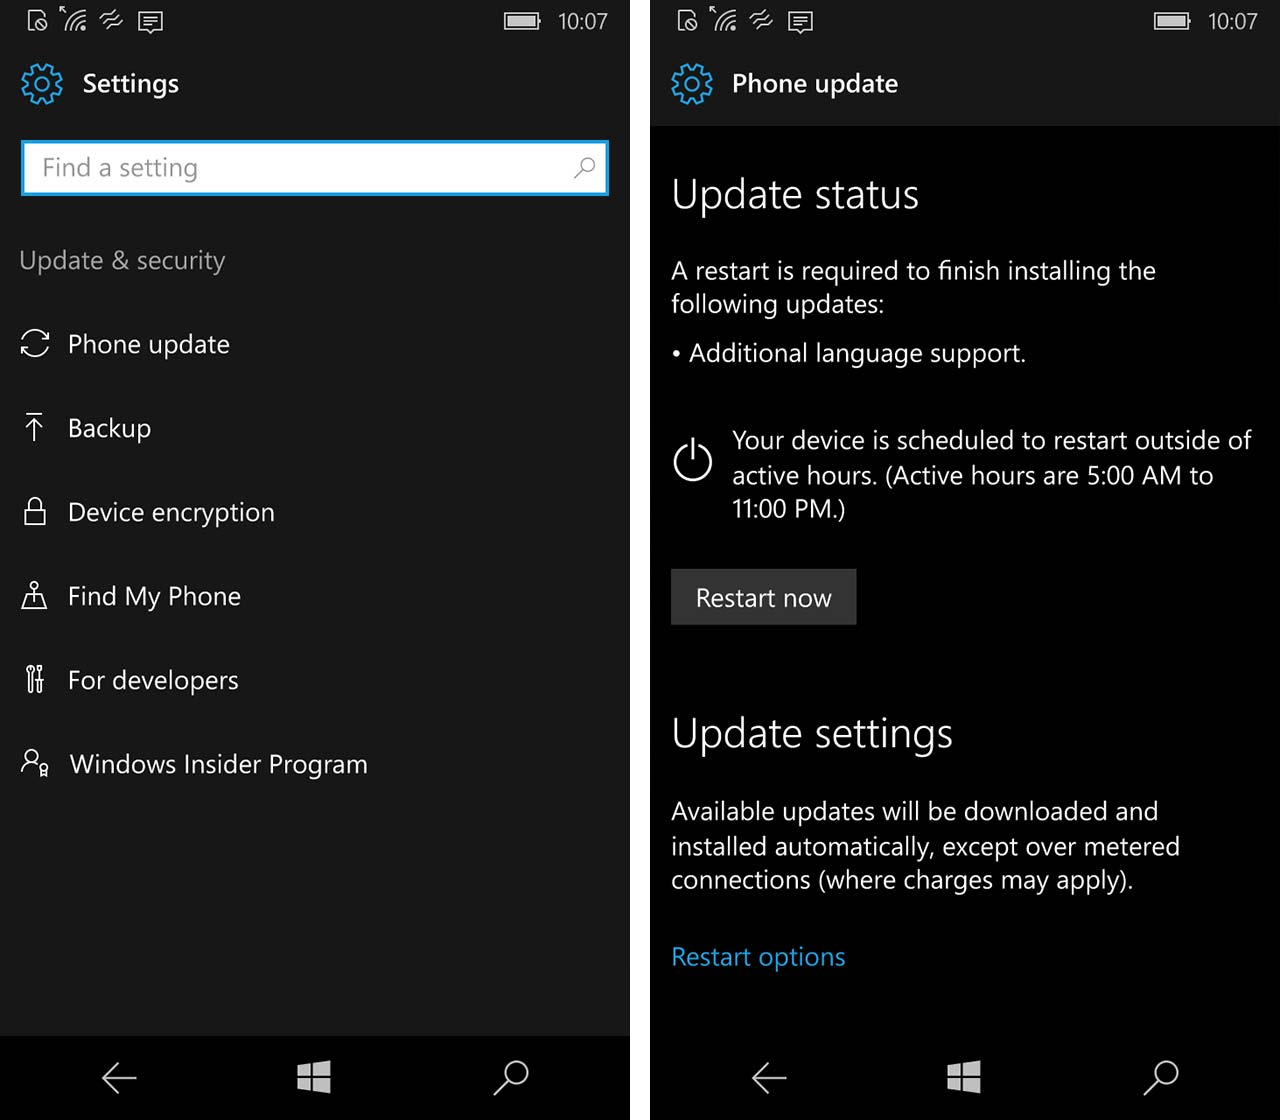 windowsphoneupdate-4